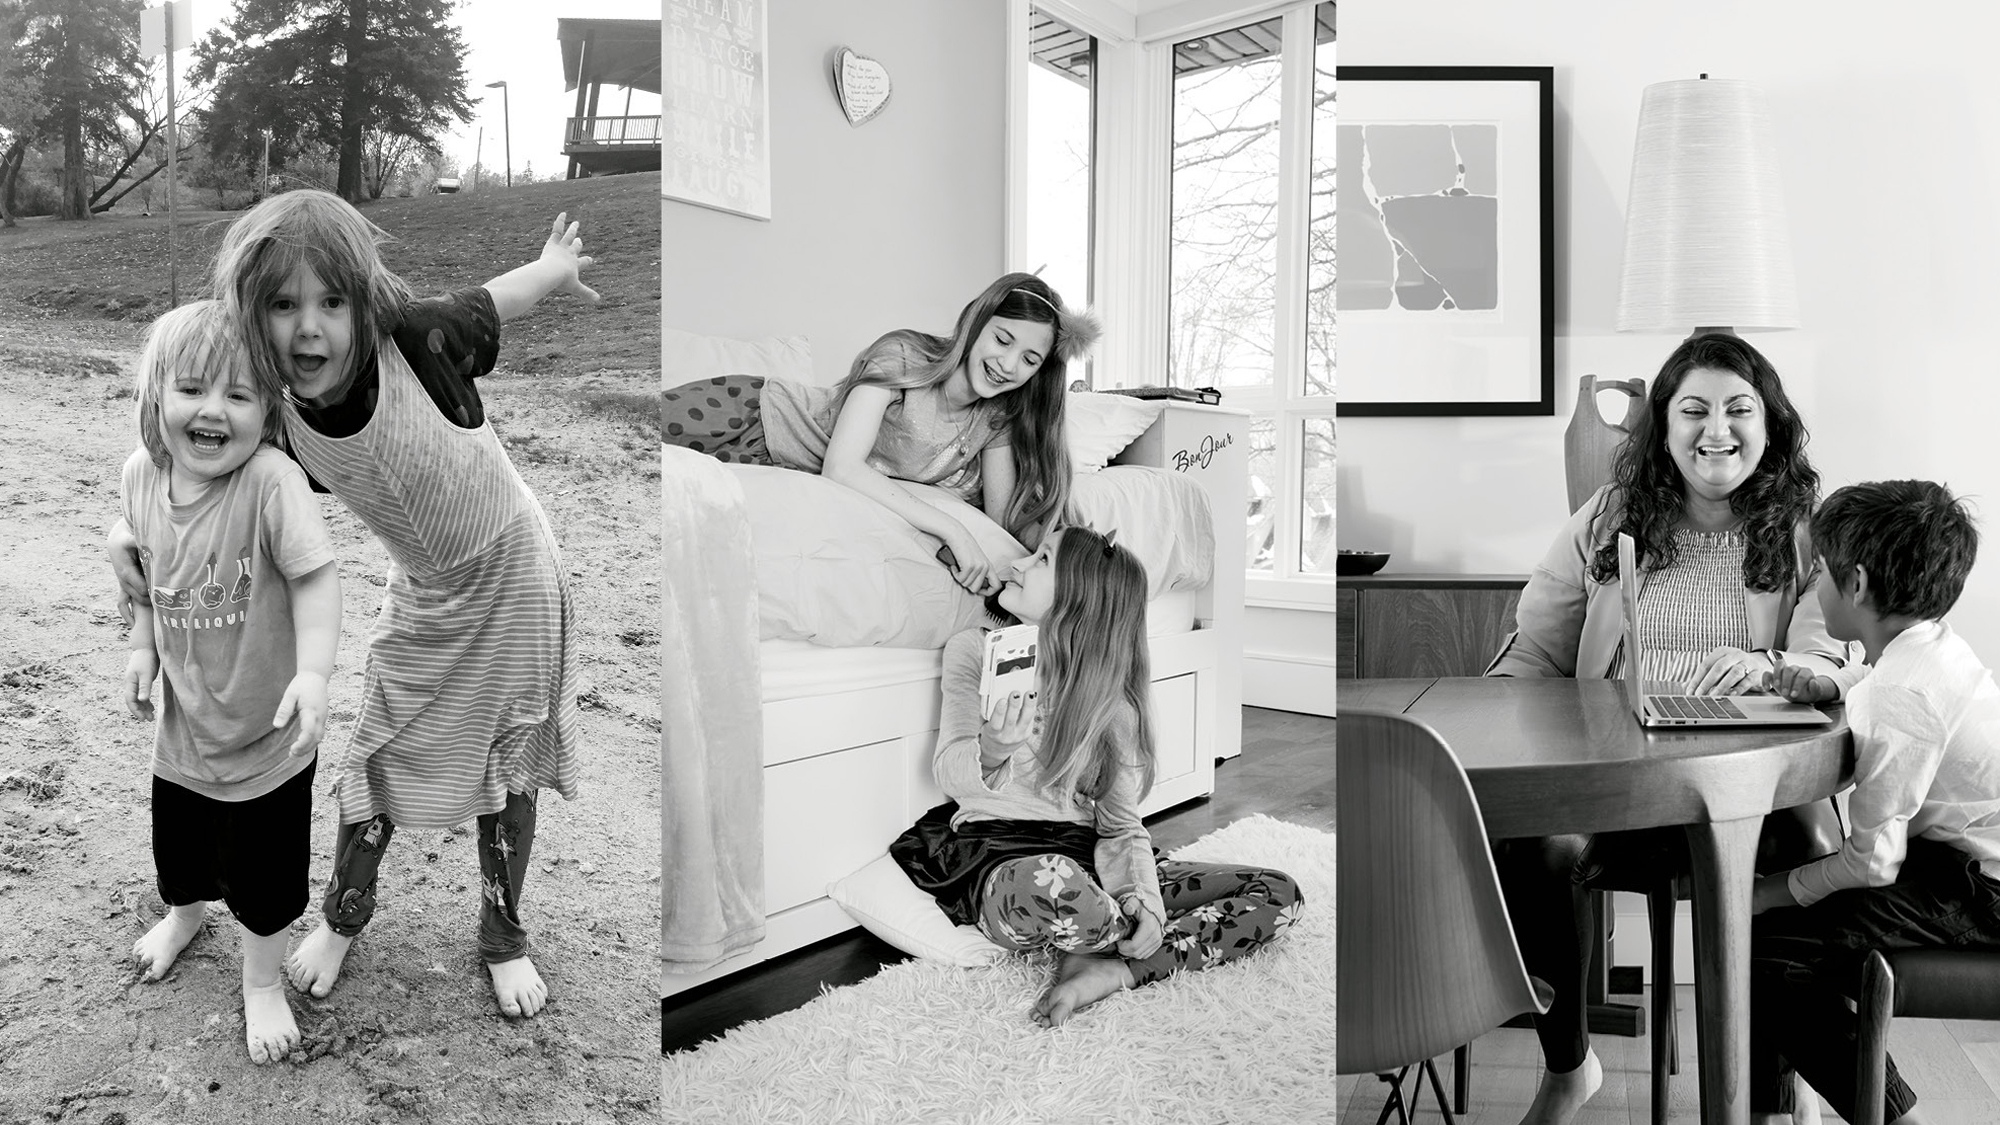 Triptych of photos of families. Photo on the left shows two siblings posing for a picture while playing outside. Photo in the centre shows two siblings talking to each other in a bedroom. The photo on the right shows a mother talking to her child at the dinner table while looking at a laptop.